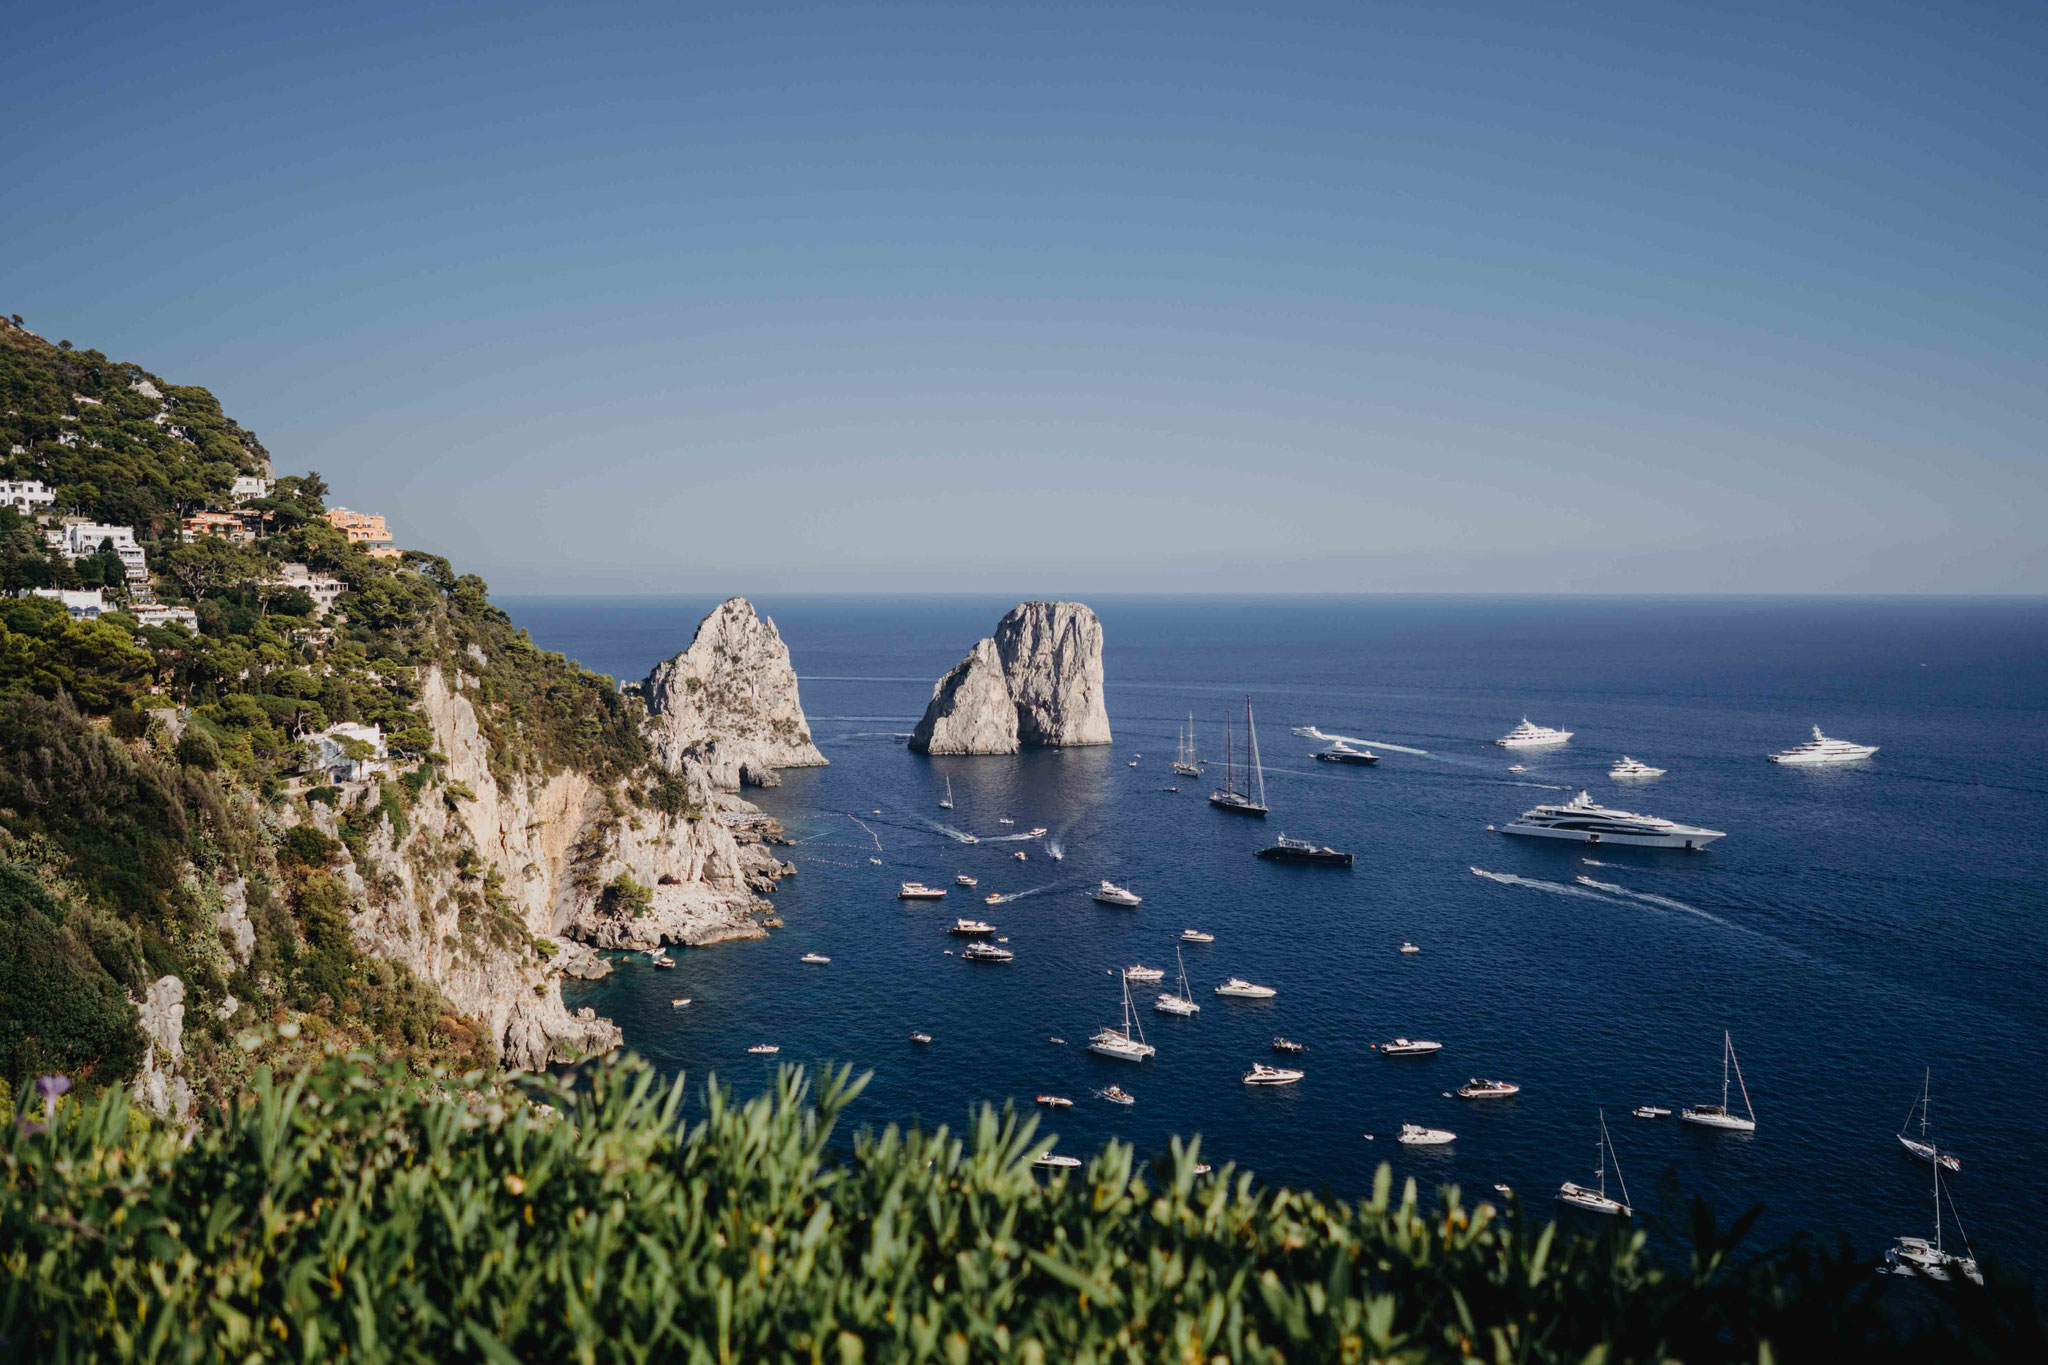 Vacation_photographer_capri_01